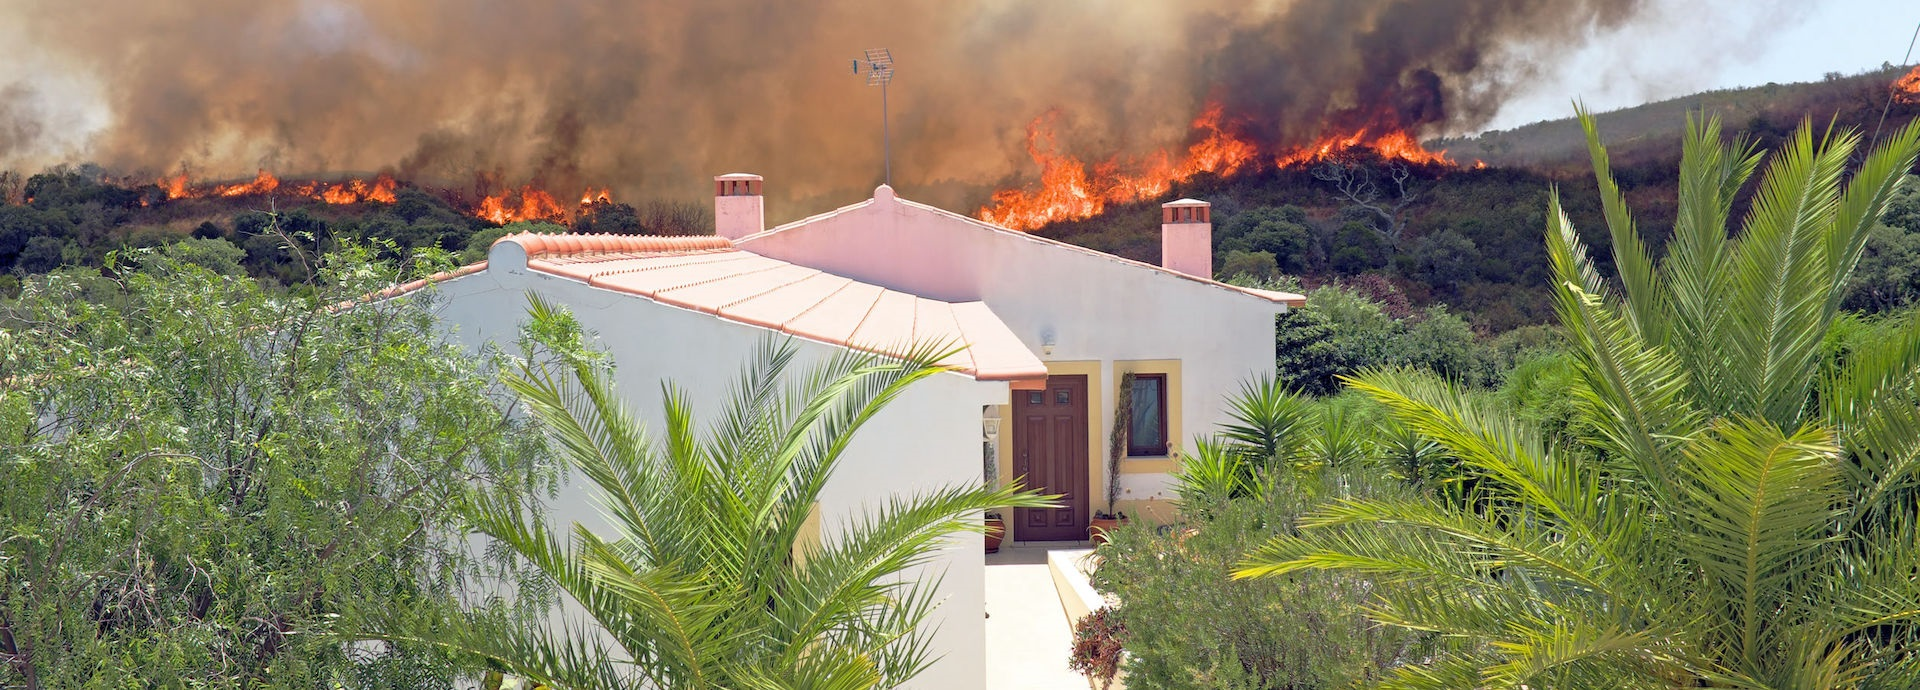 Houses threatened by wildfire in portugal